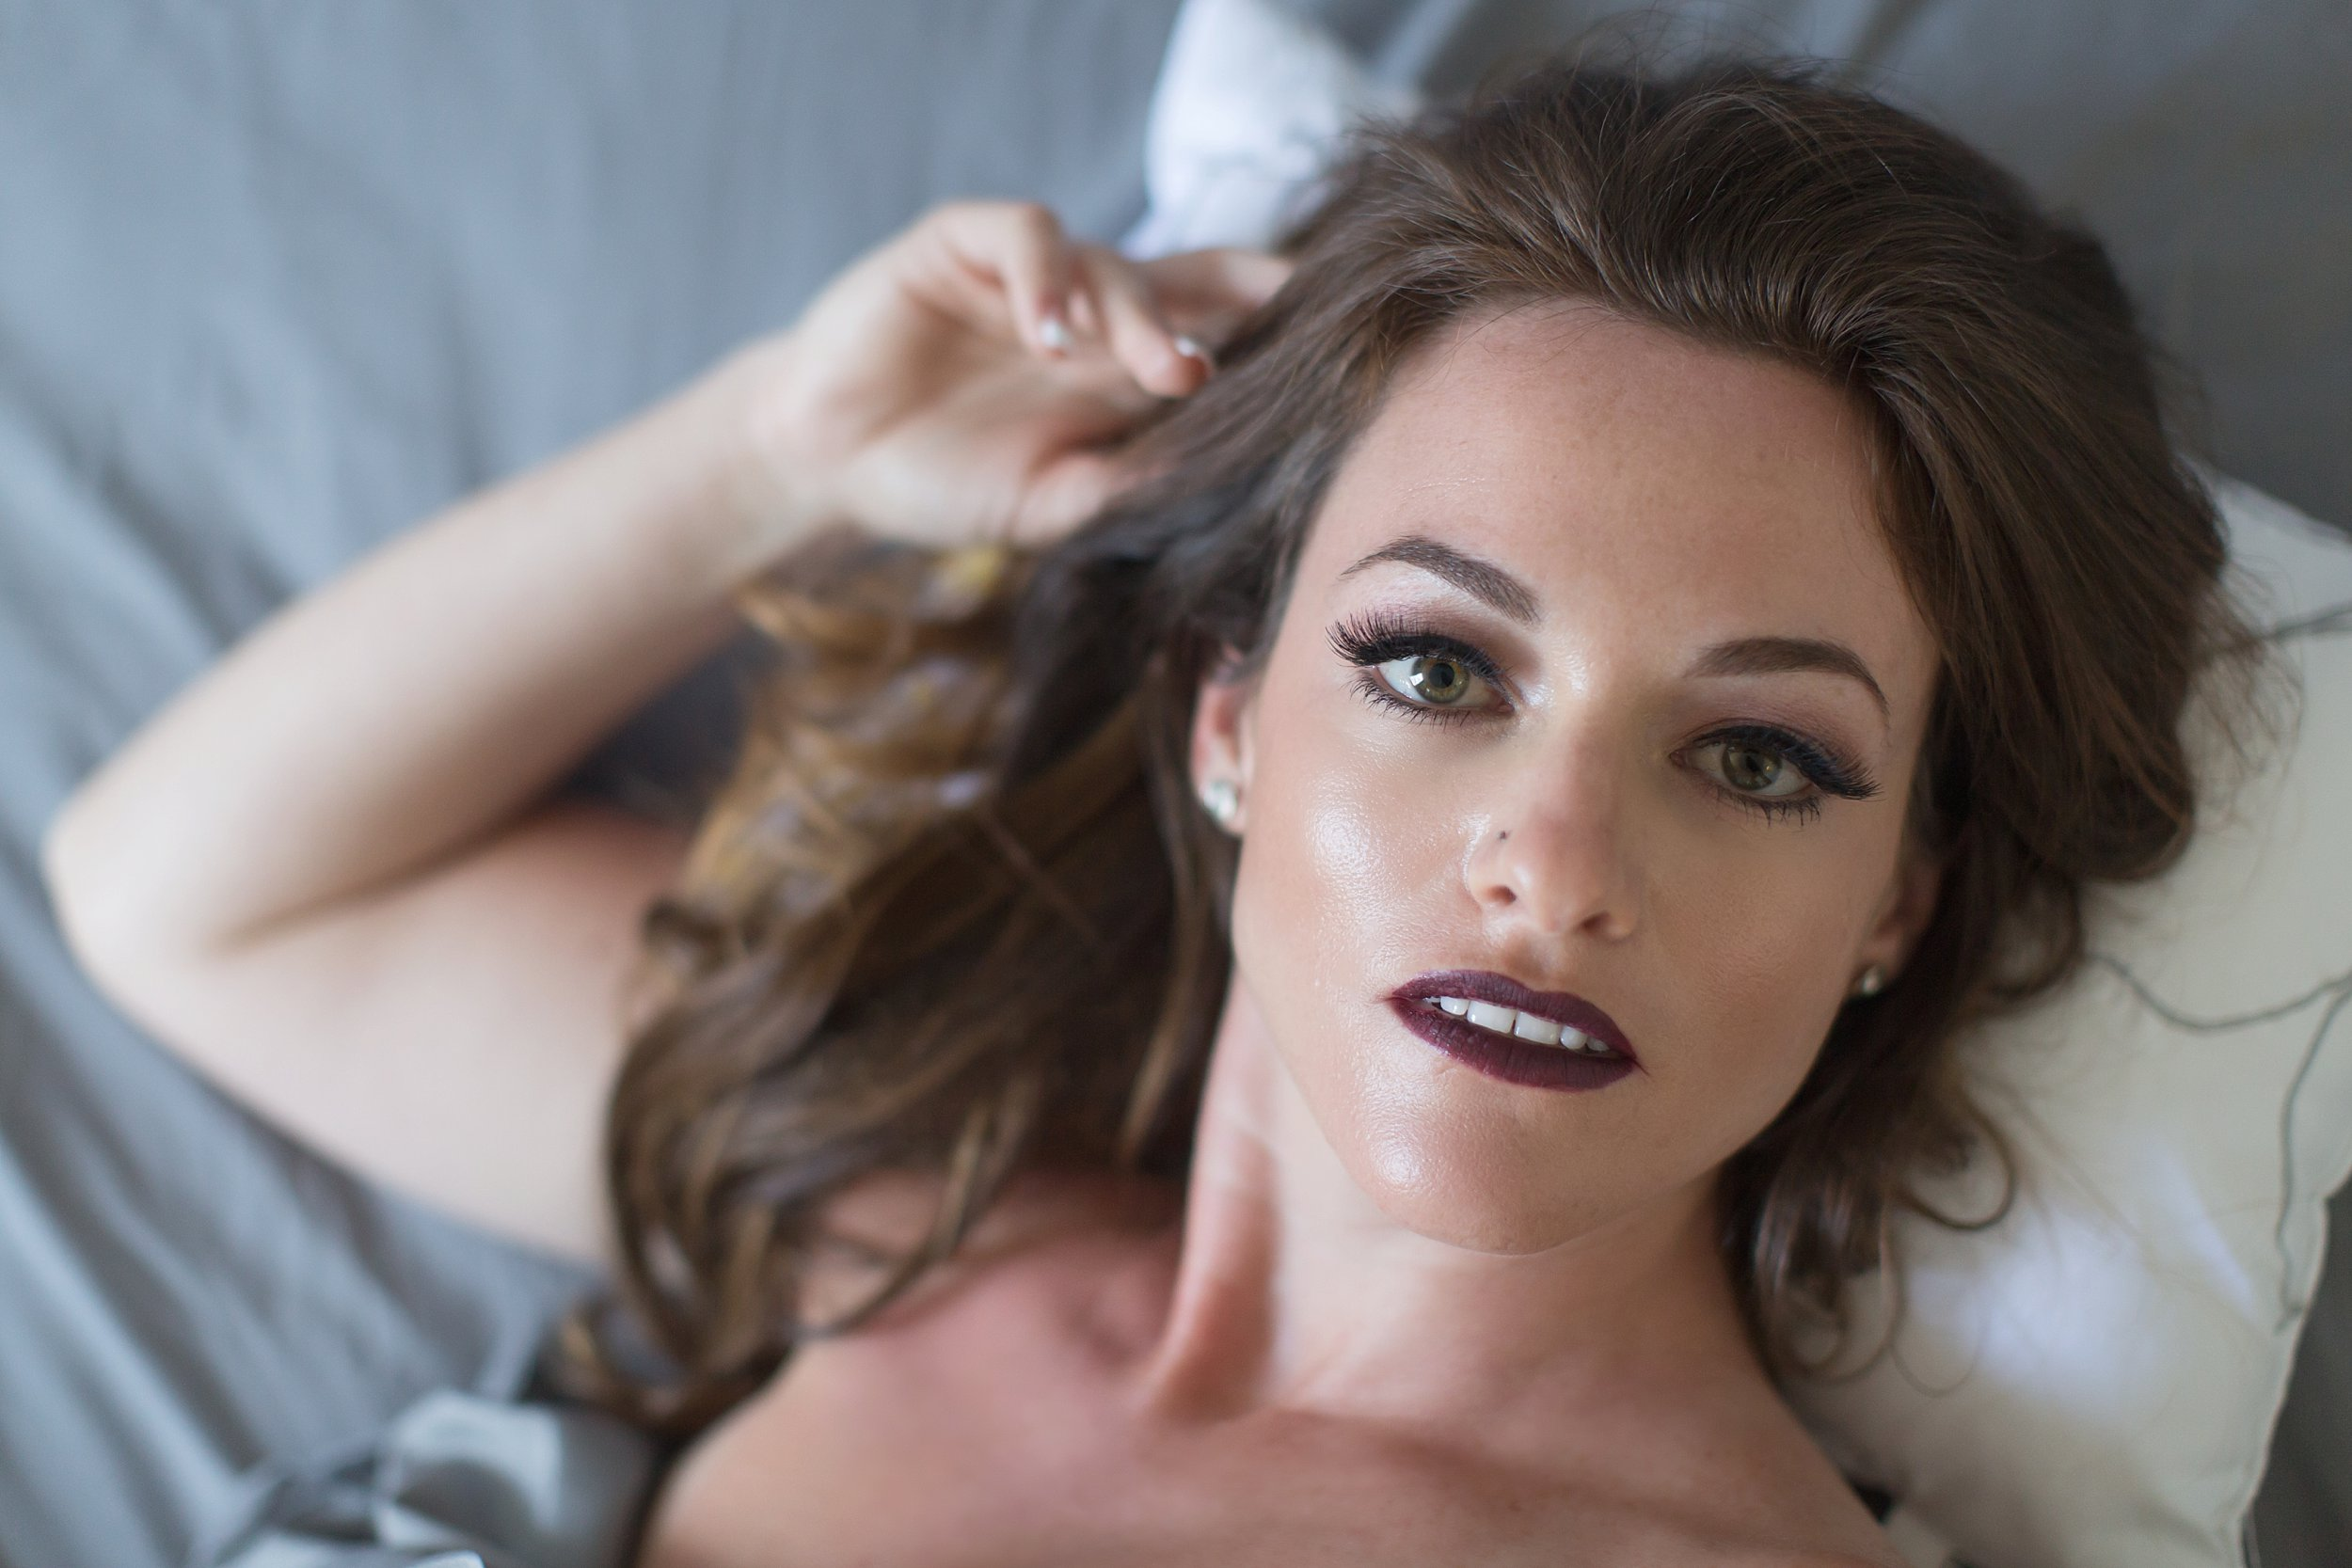 Woman with beautiful dramatic makeup and dark lips